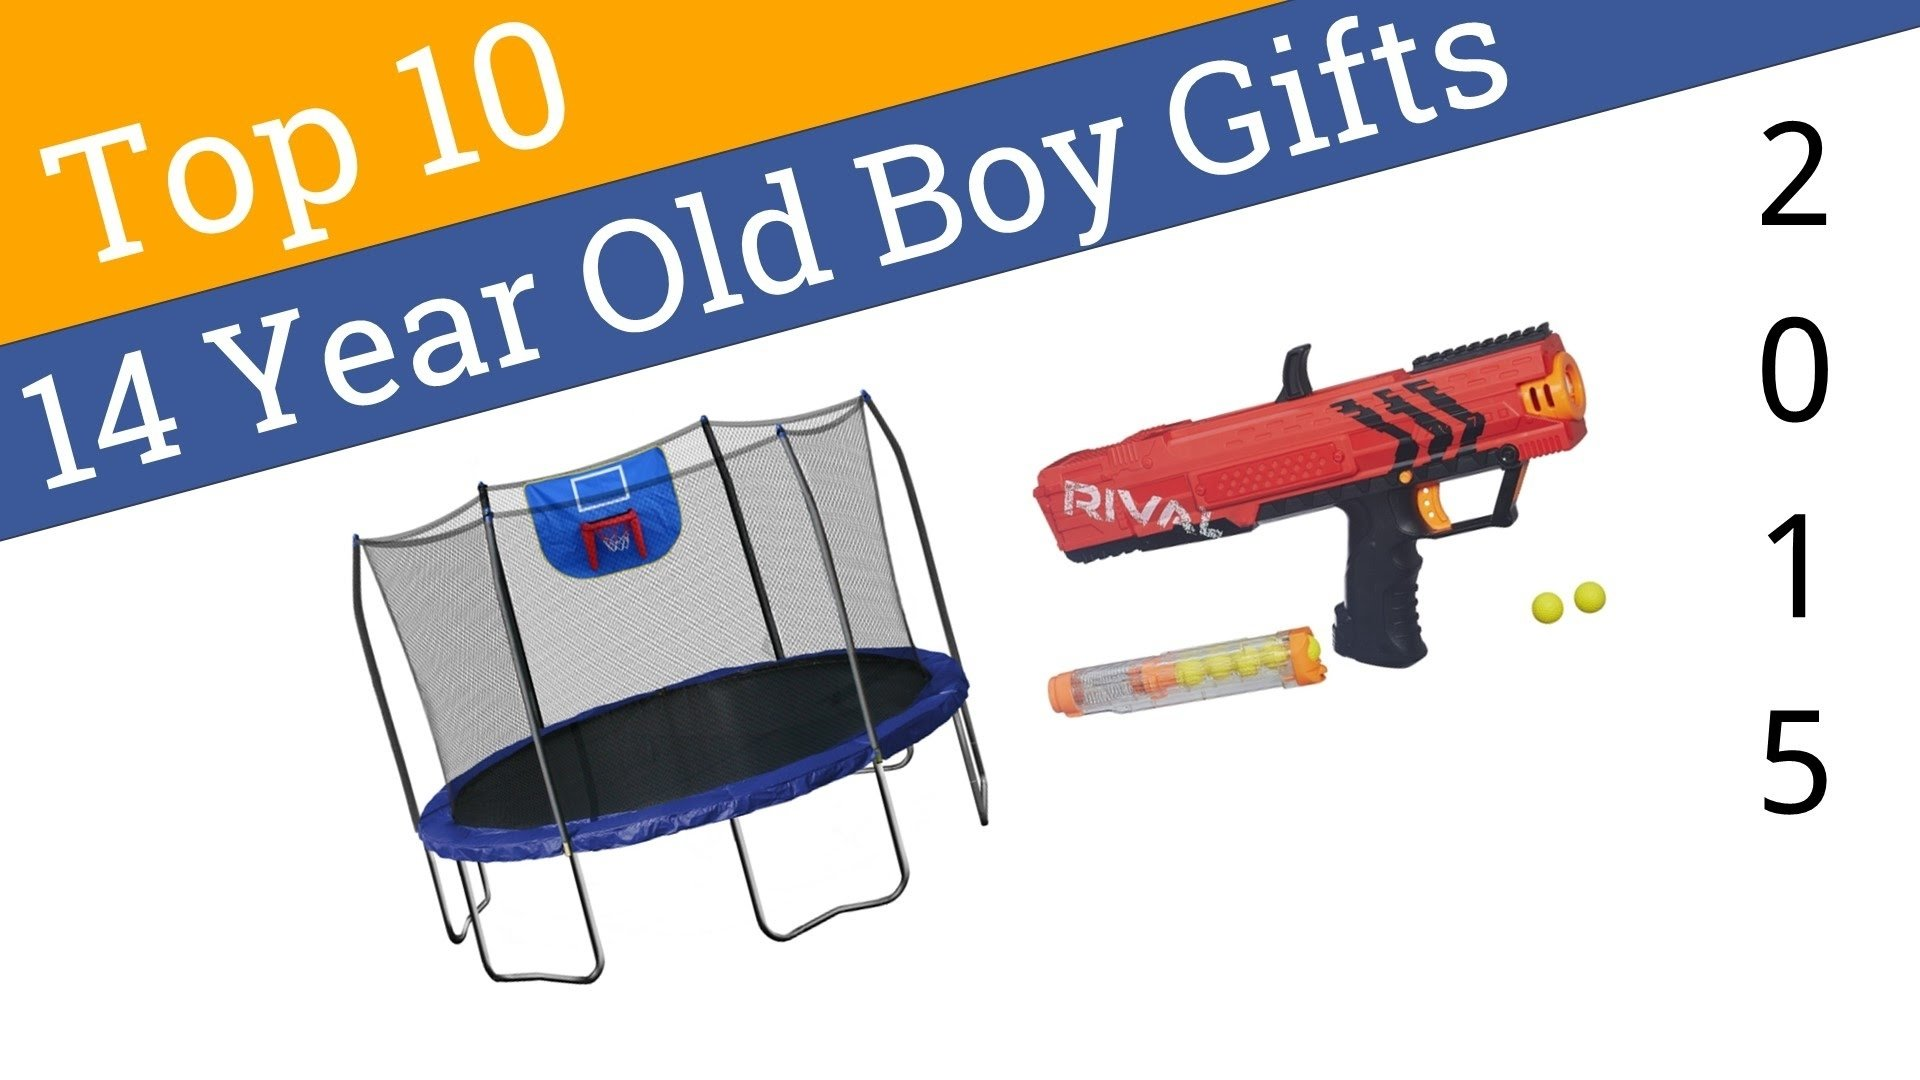 10 best 14 year old boy gifts 2015 - youtube